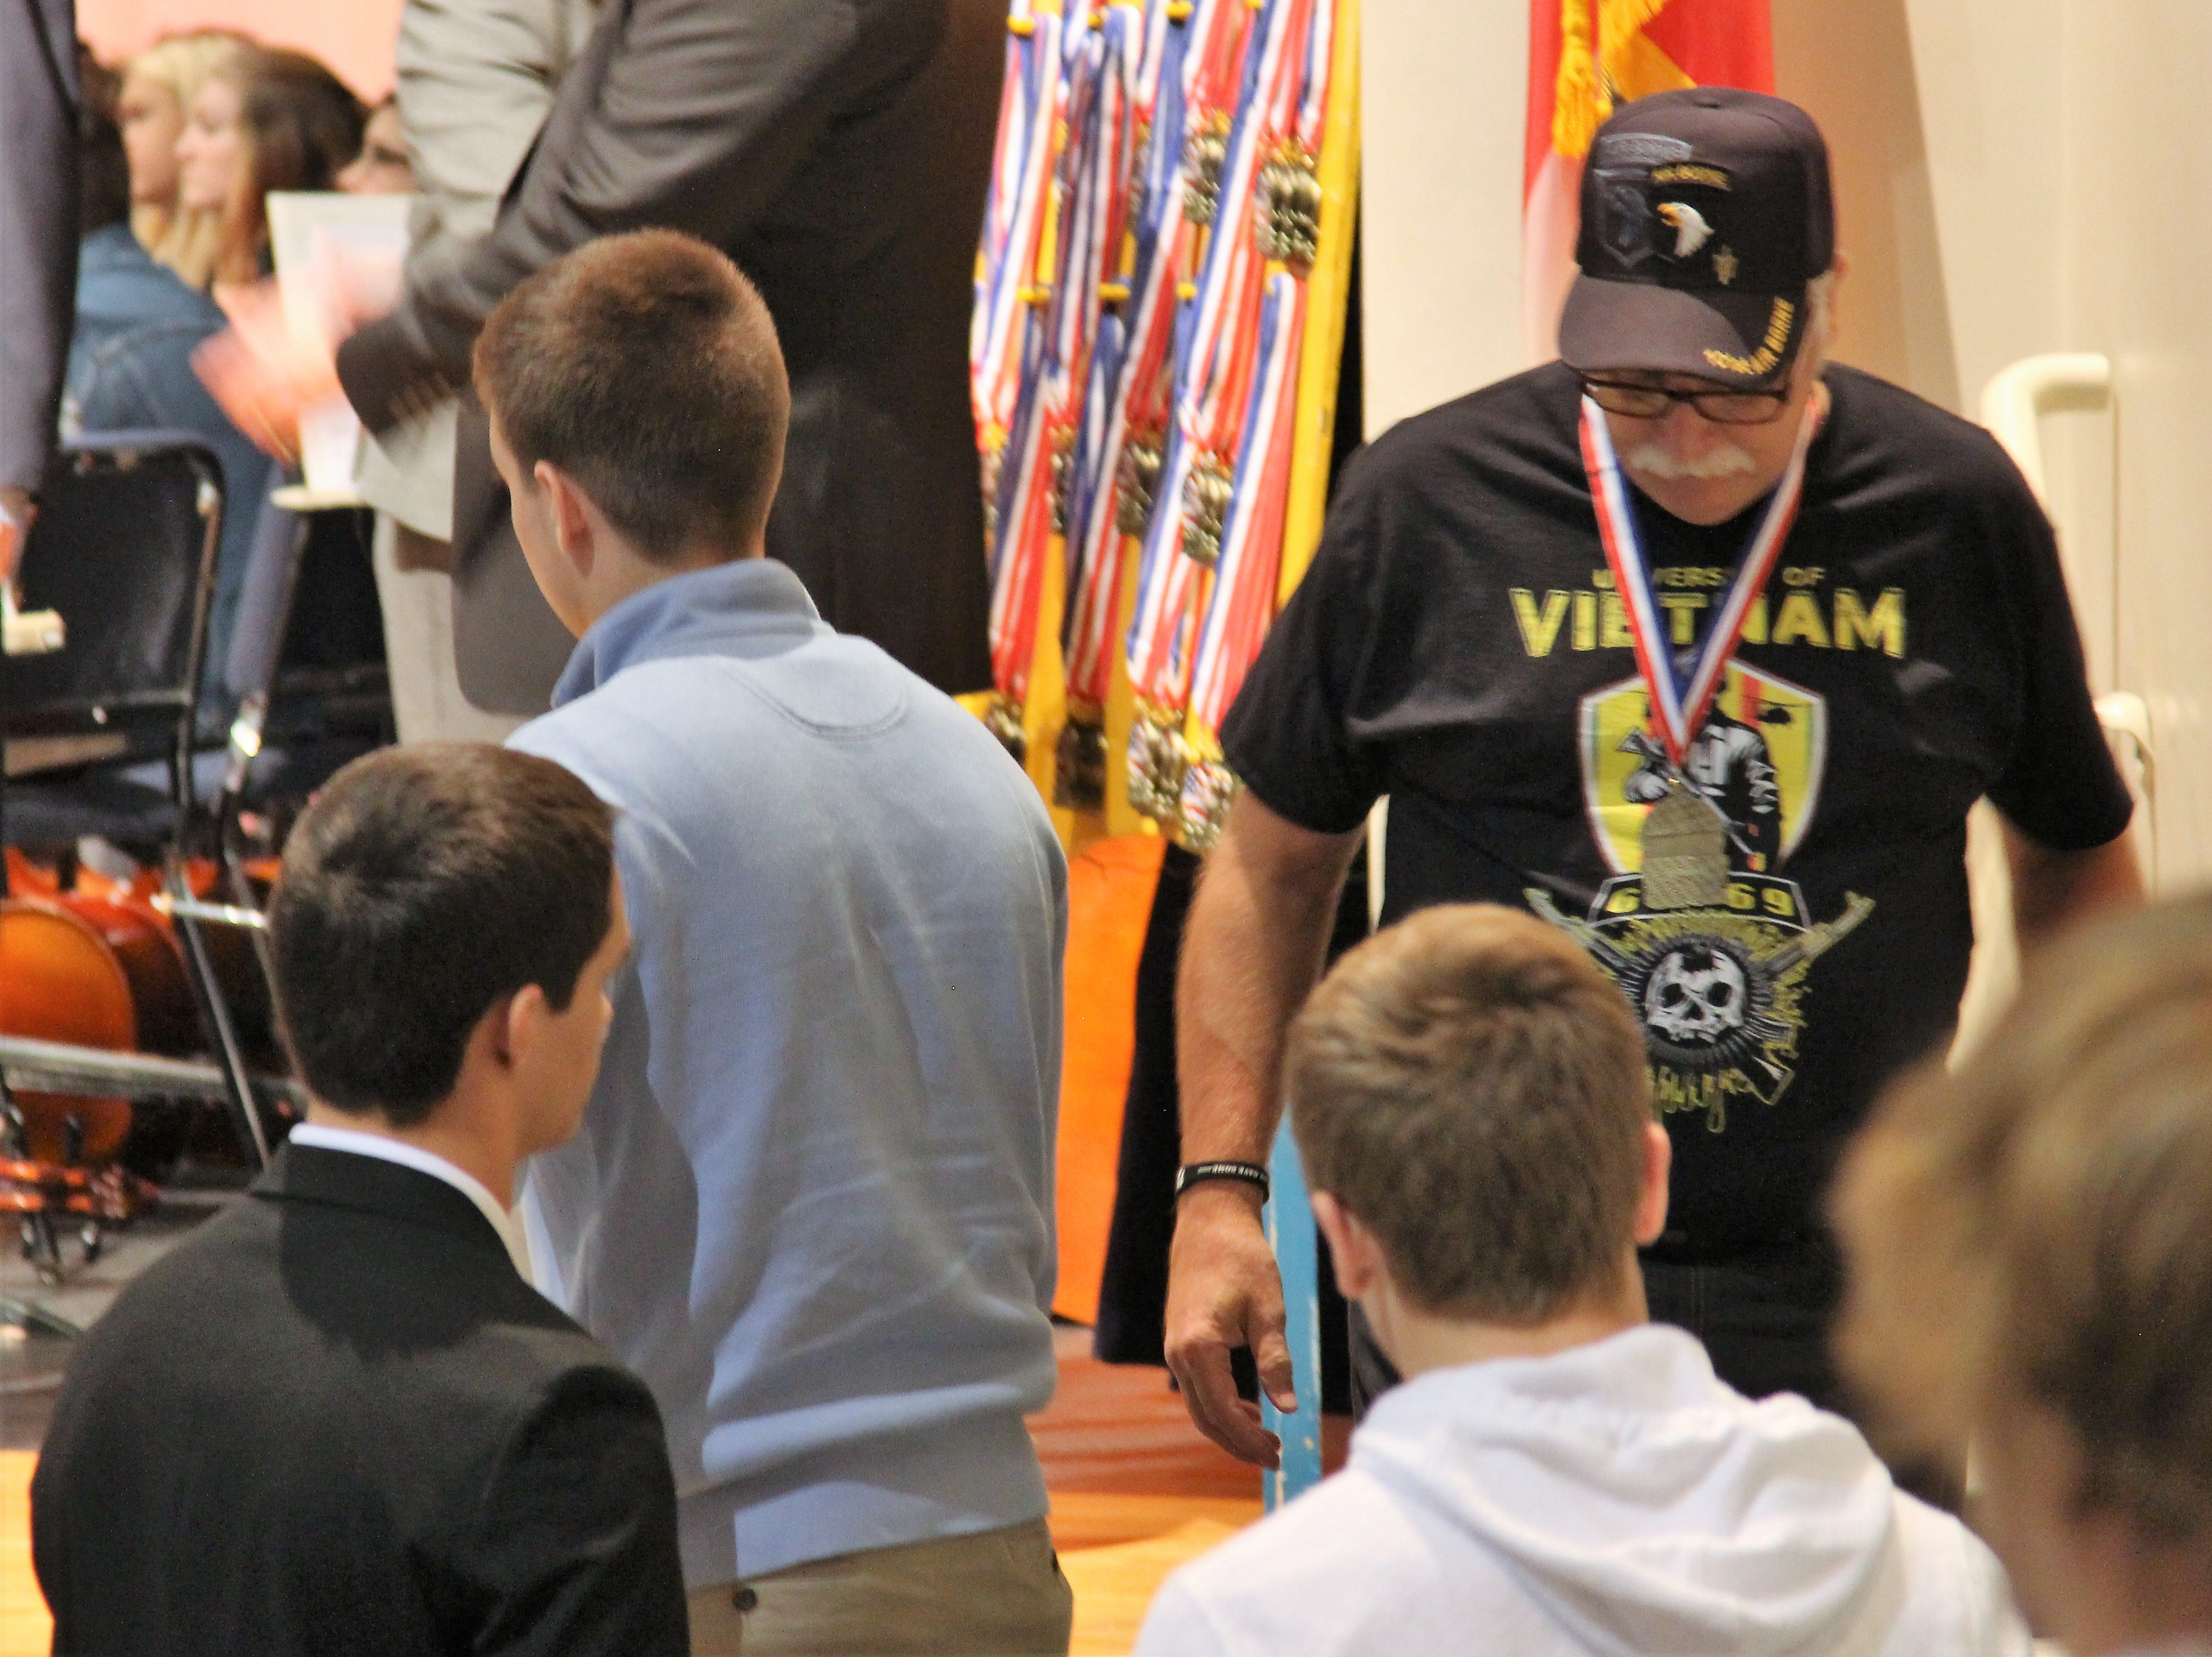 A Vietnam veteran walks back to his seat on Tuesday with a medal hanging from his neck. Students at River Valley High School honored Marion County veterans with medals and speeches following Veterans Day.